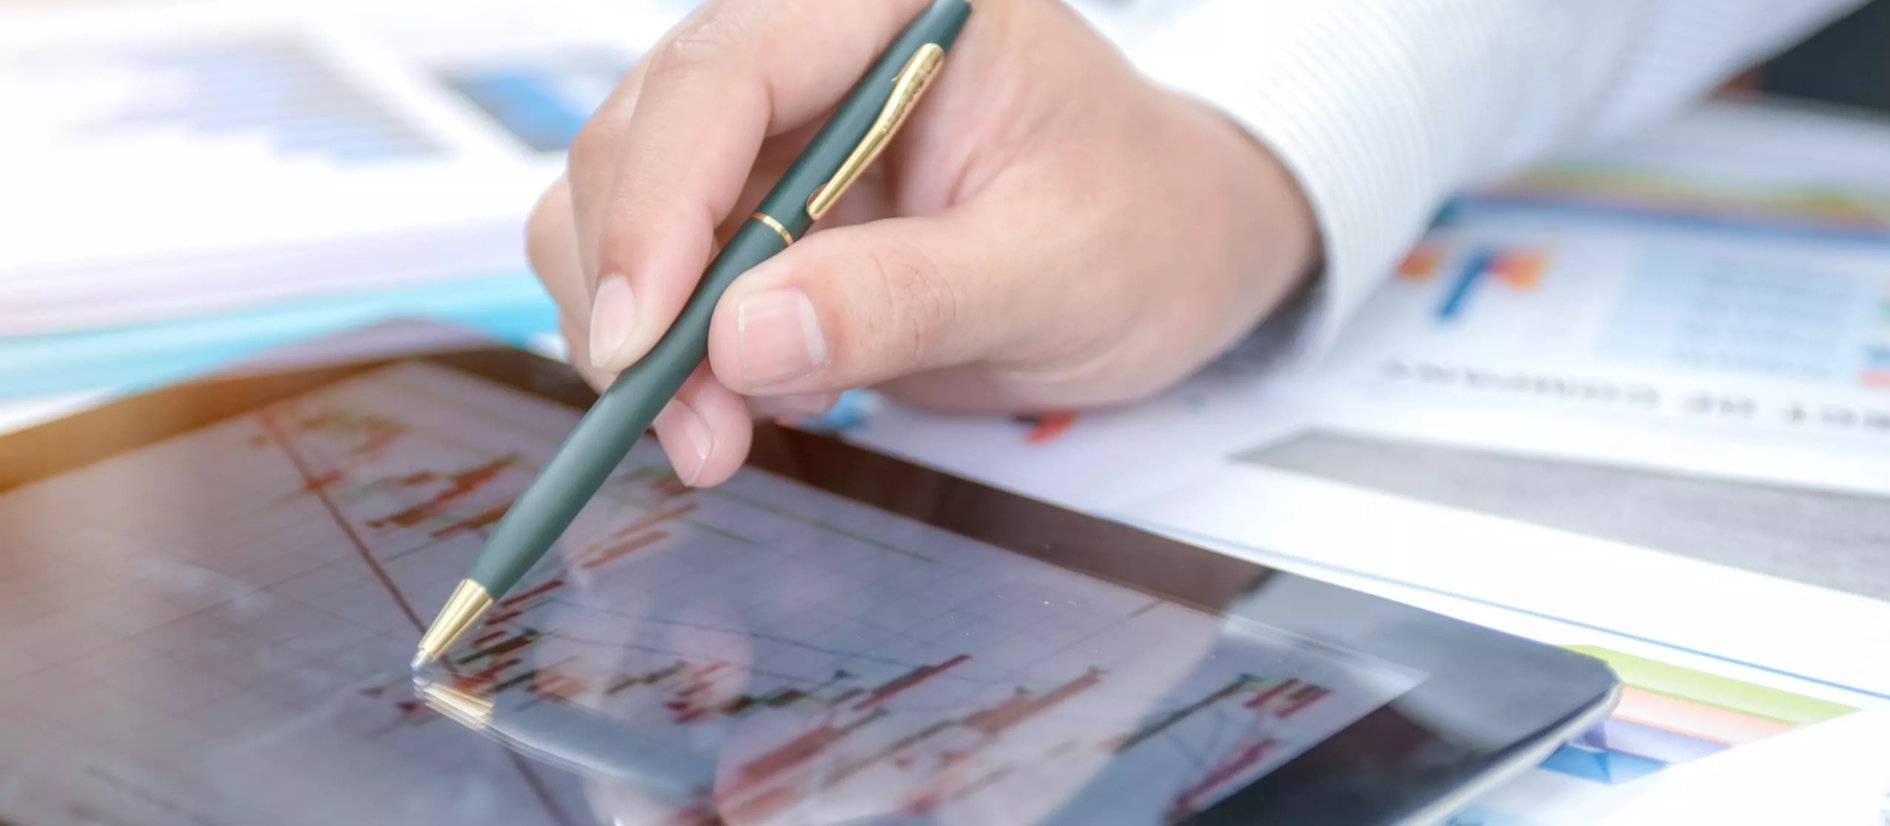 Person pointing at a tablet using a pen